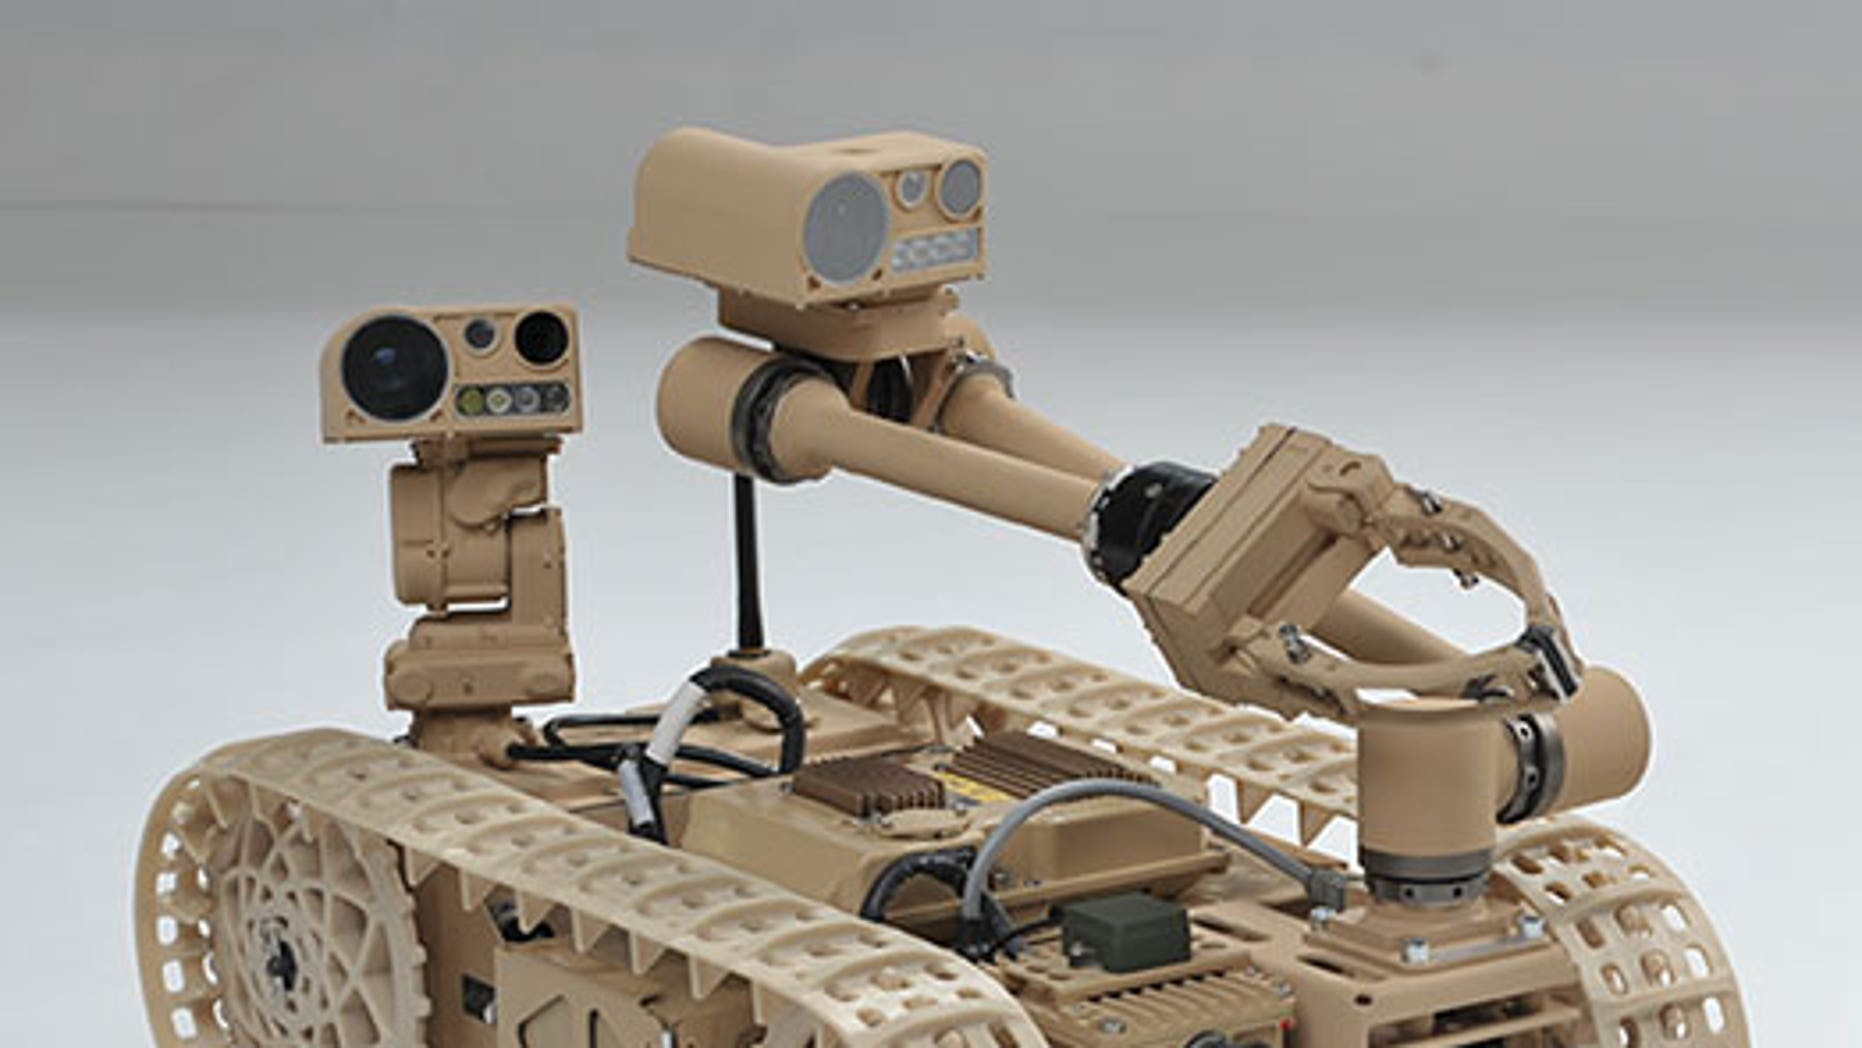 """Researchers have been exploring """"self-righting"""" techniques using the Advanced Explosive Ordnance Disposal Robotic System (AEODRS). (Photo Credit: Courtesy Northrop Grumman Corporation)"""